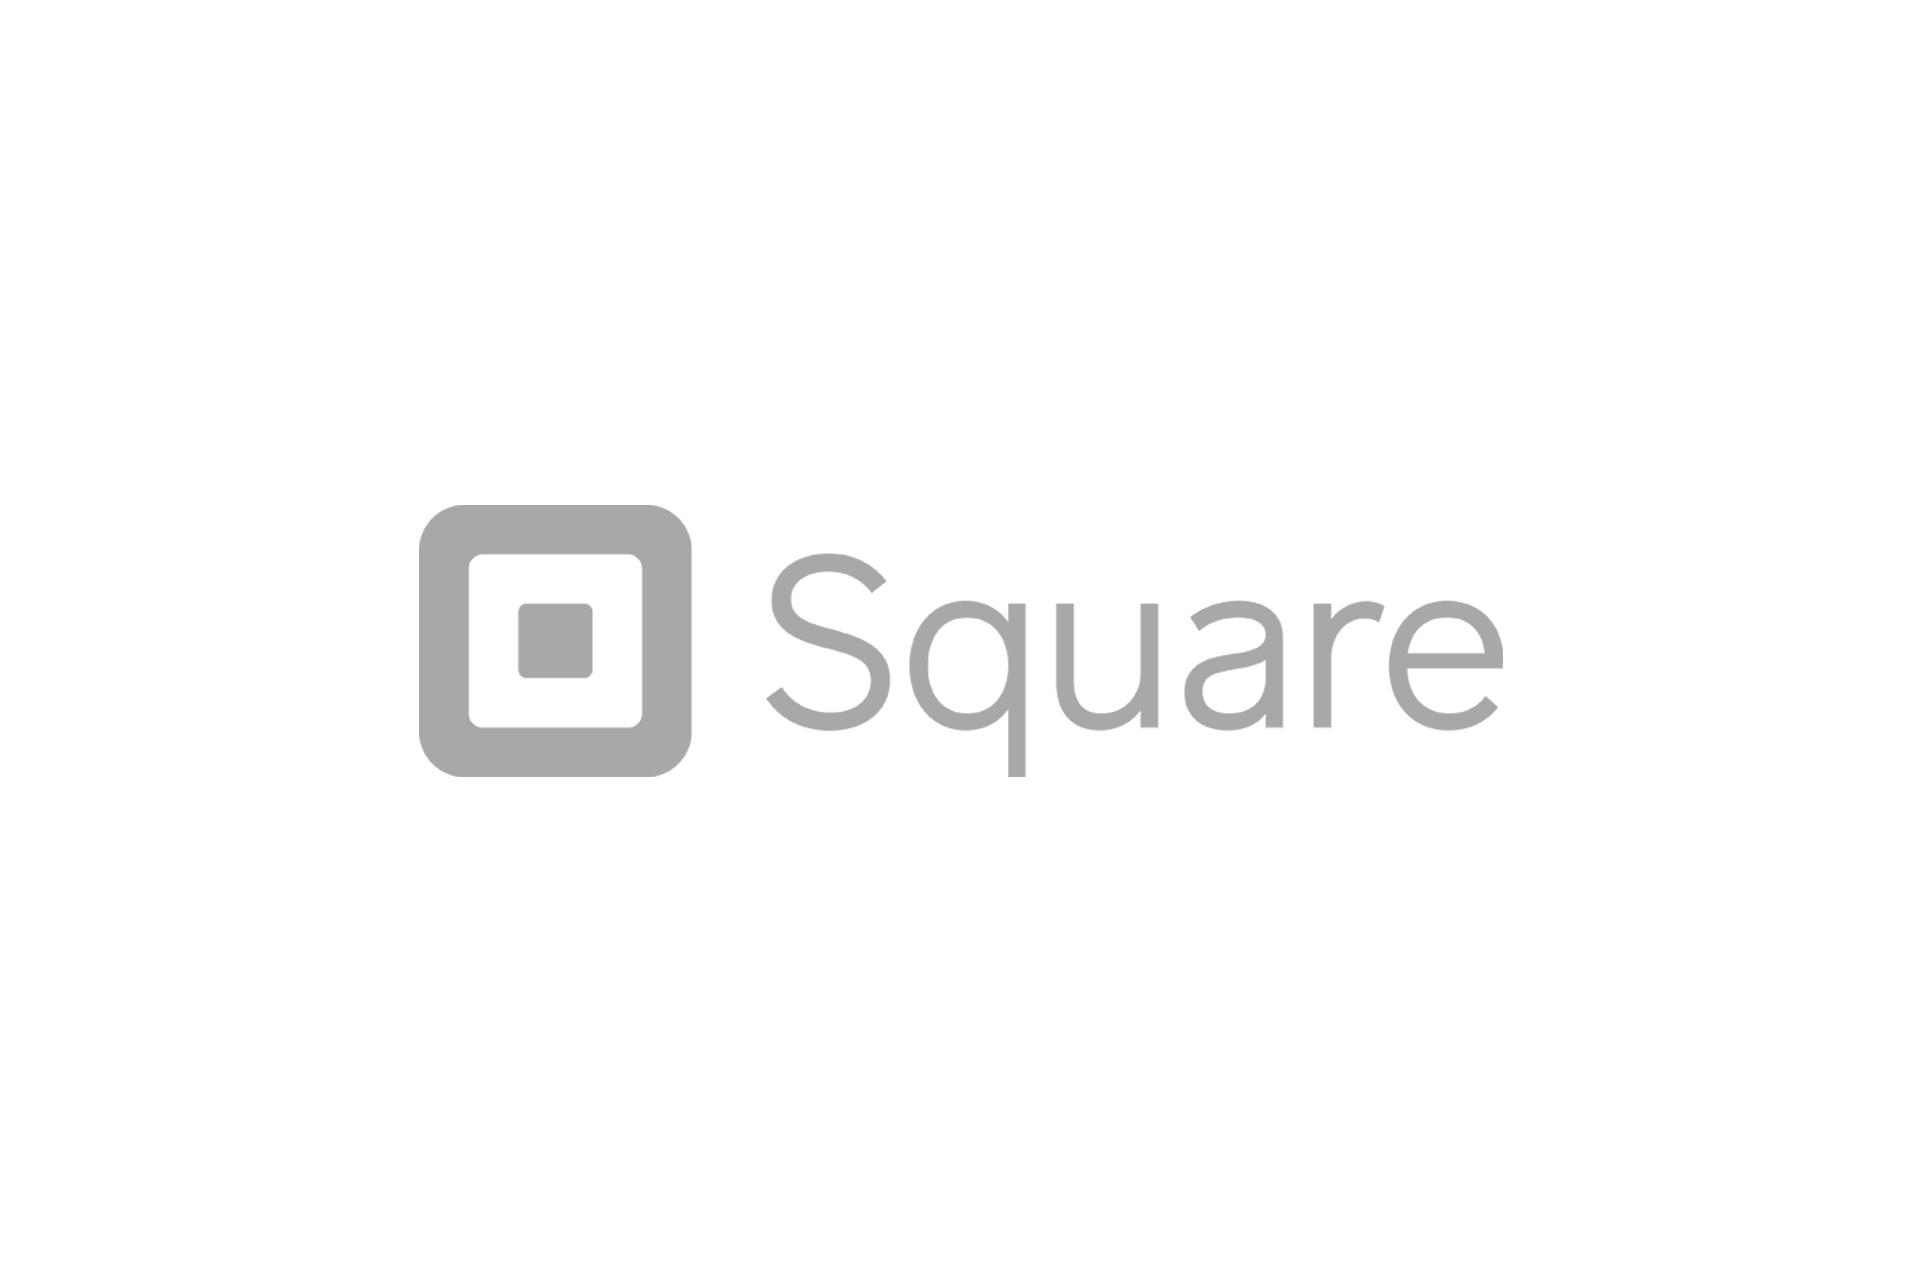 square logo grey